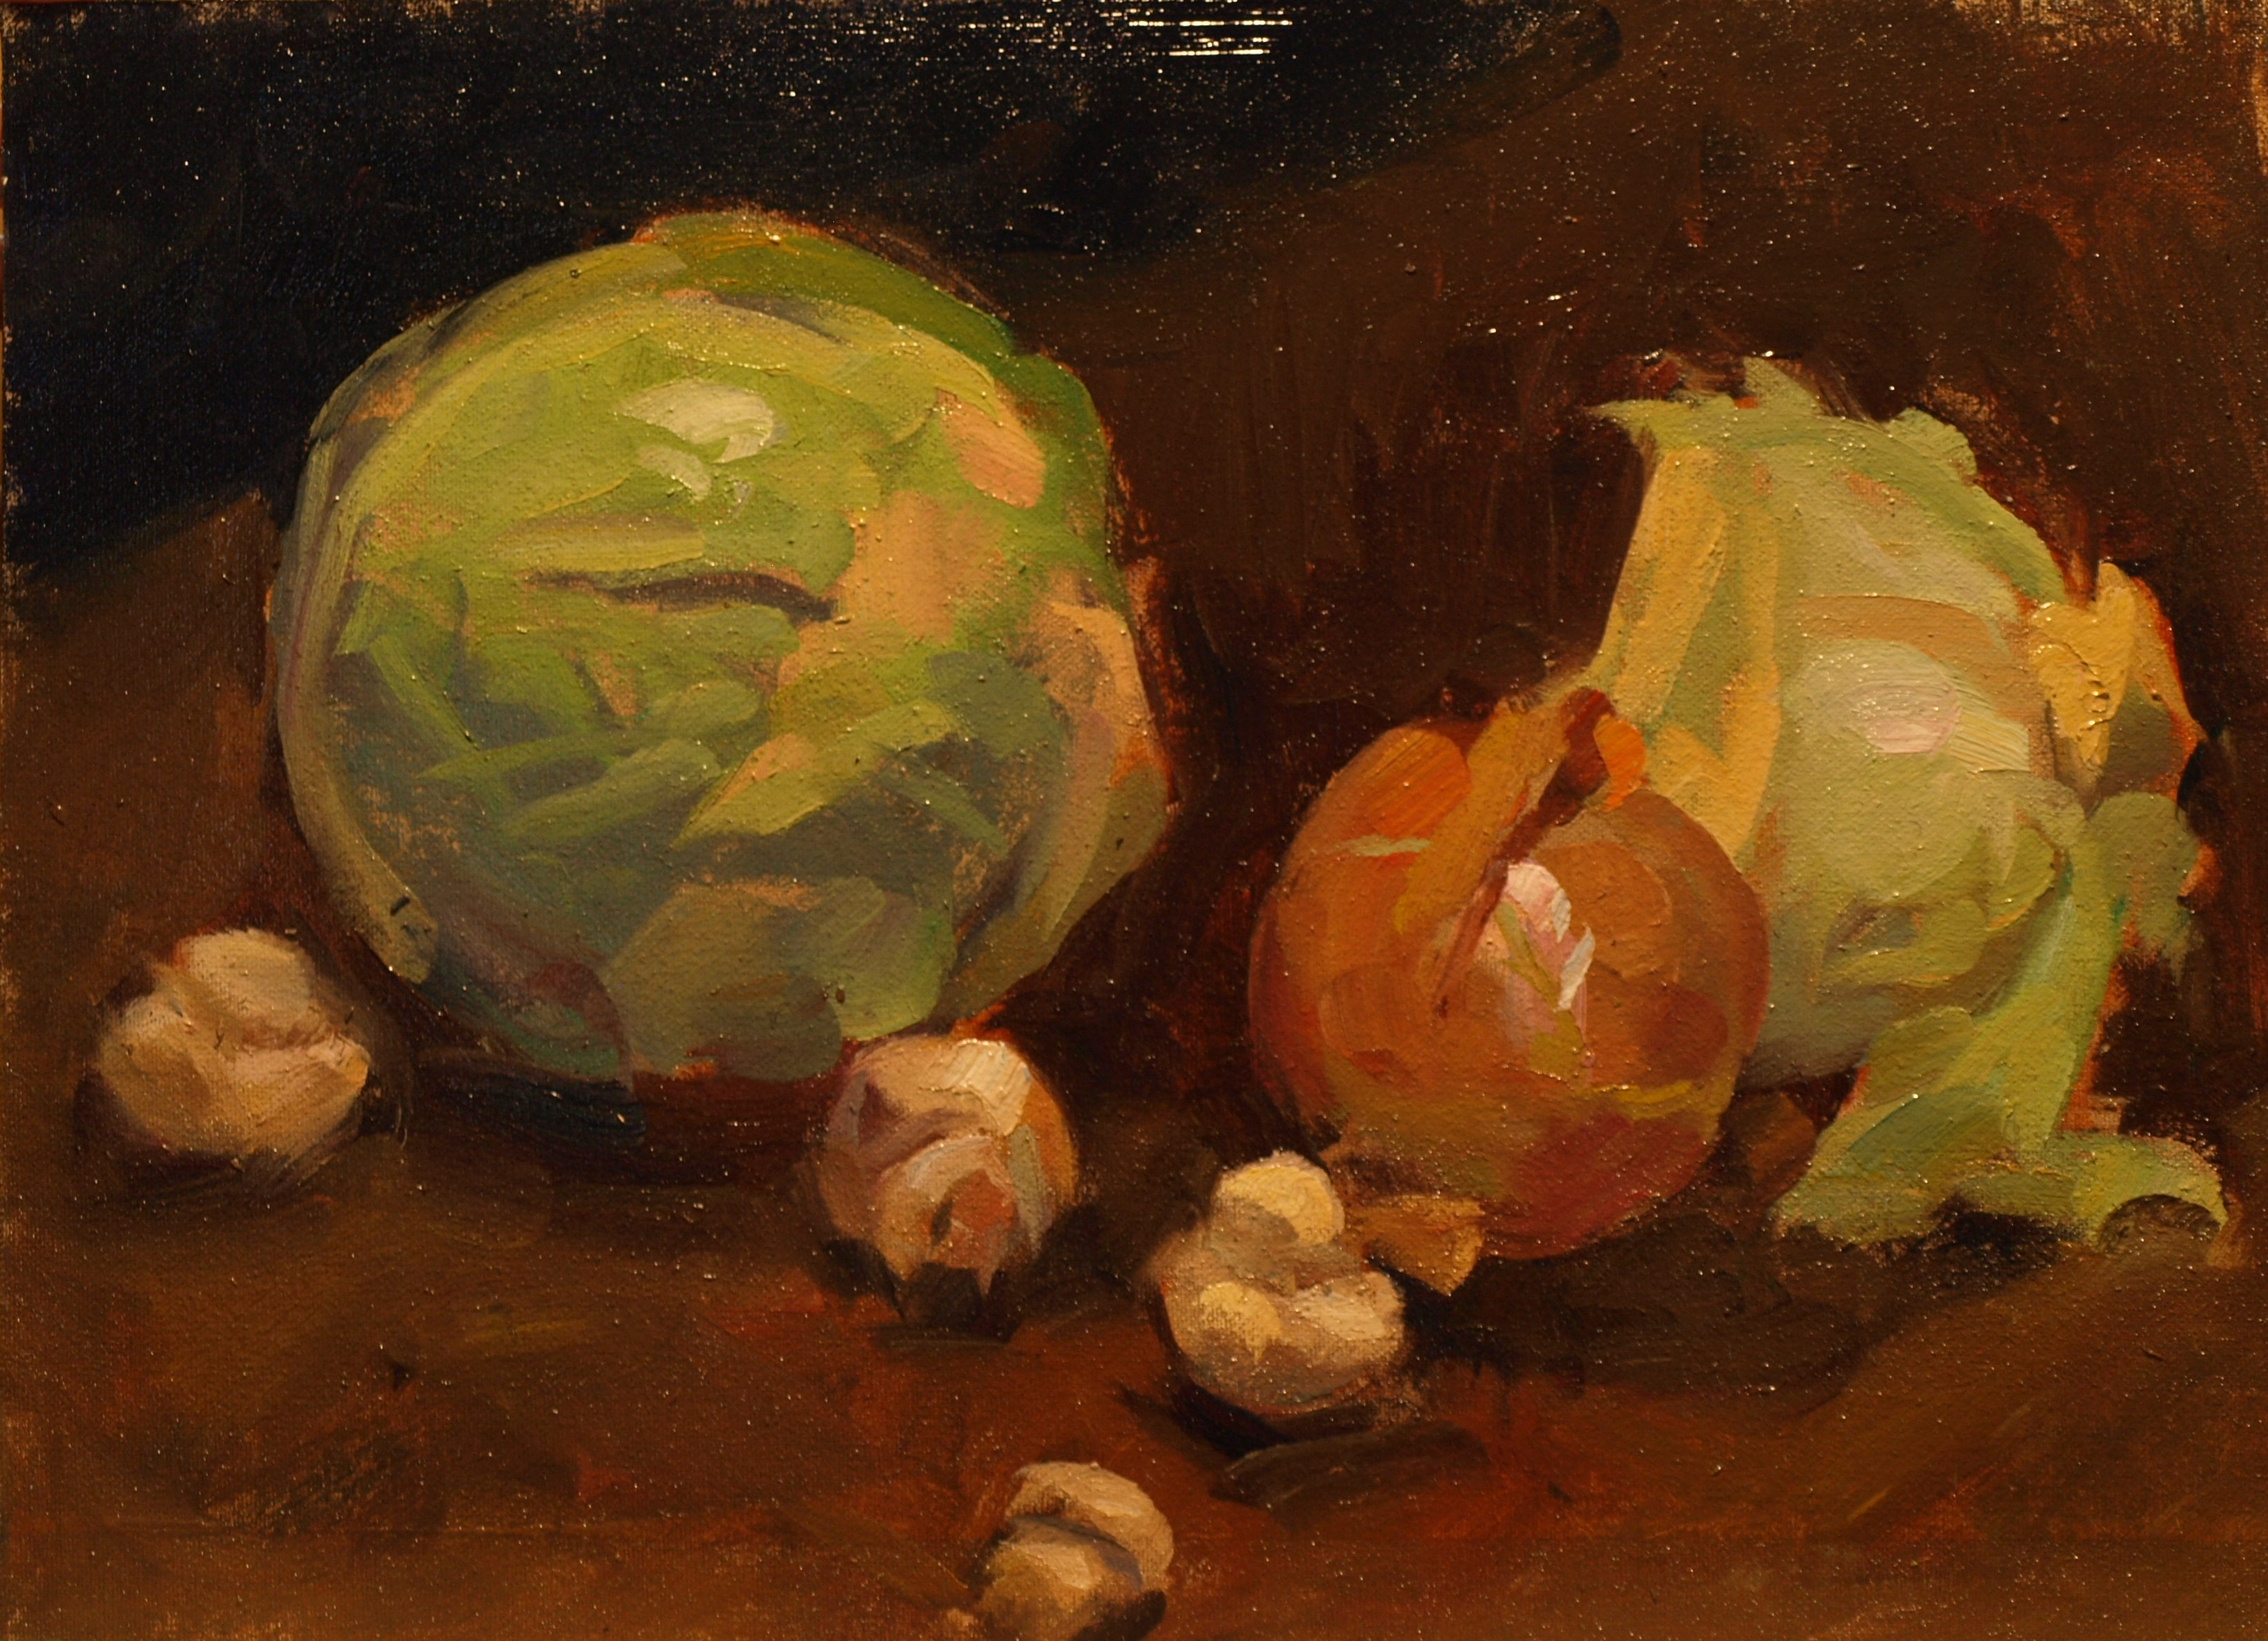 Cabbage Onions Mushrooms, Oil on Canvas on Panel, 12 x 16 Inches, by Susan Grisell, $325